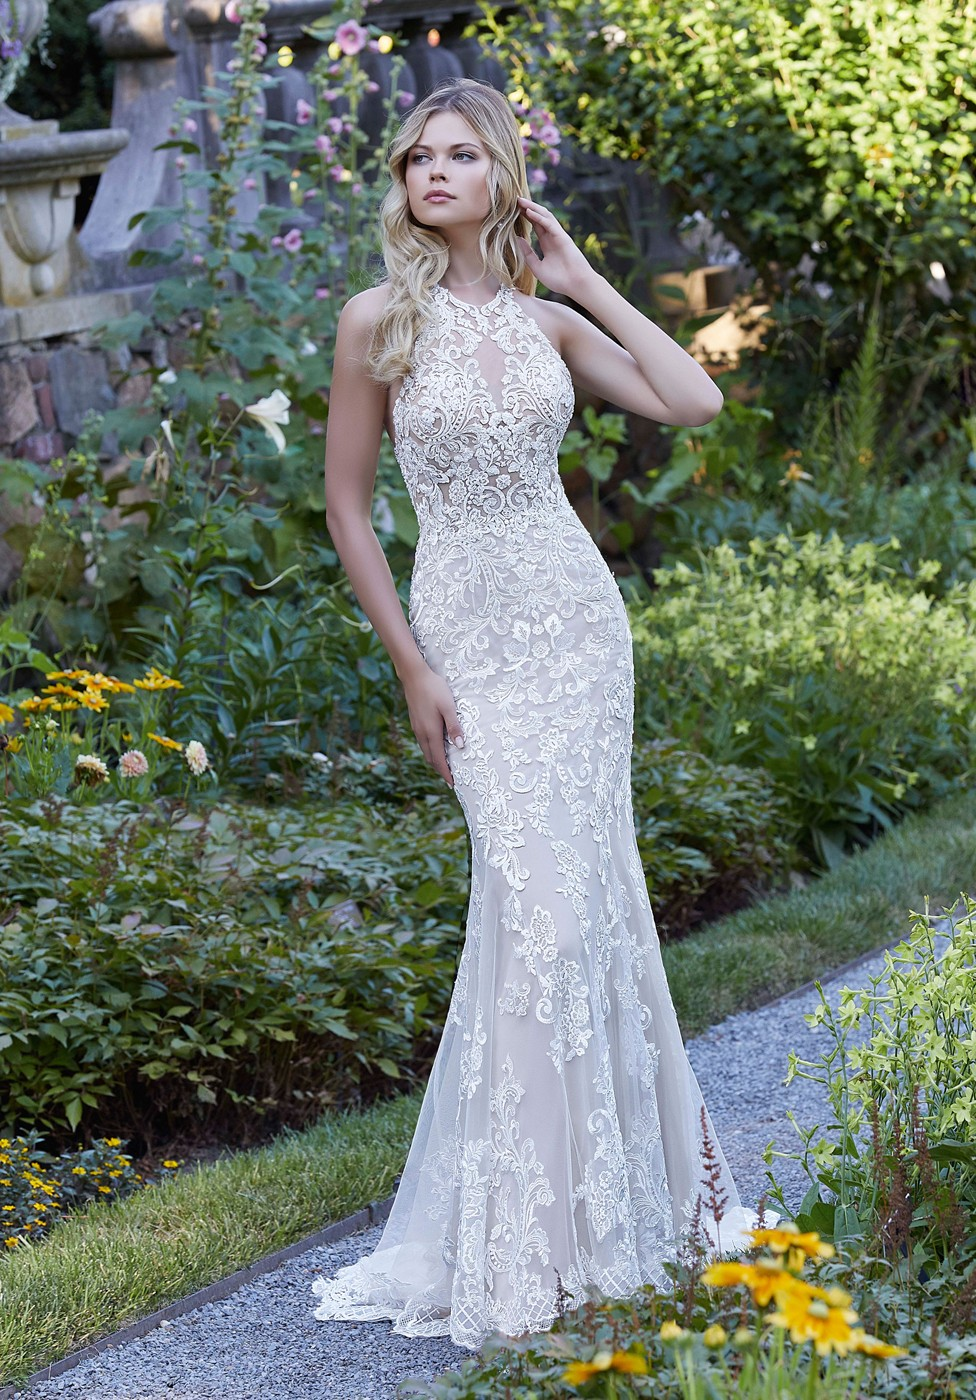 8deebbd328f Mori Lee 2030 Pia Dress - MadameBridal.com